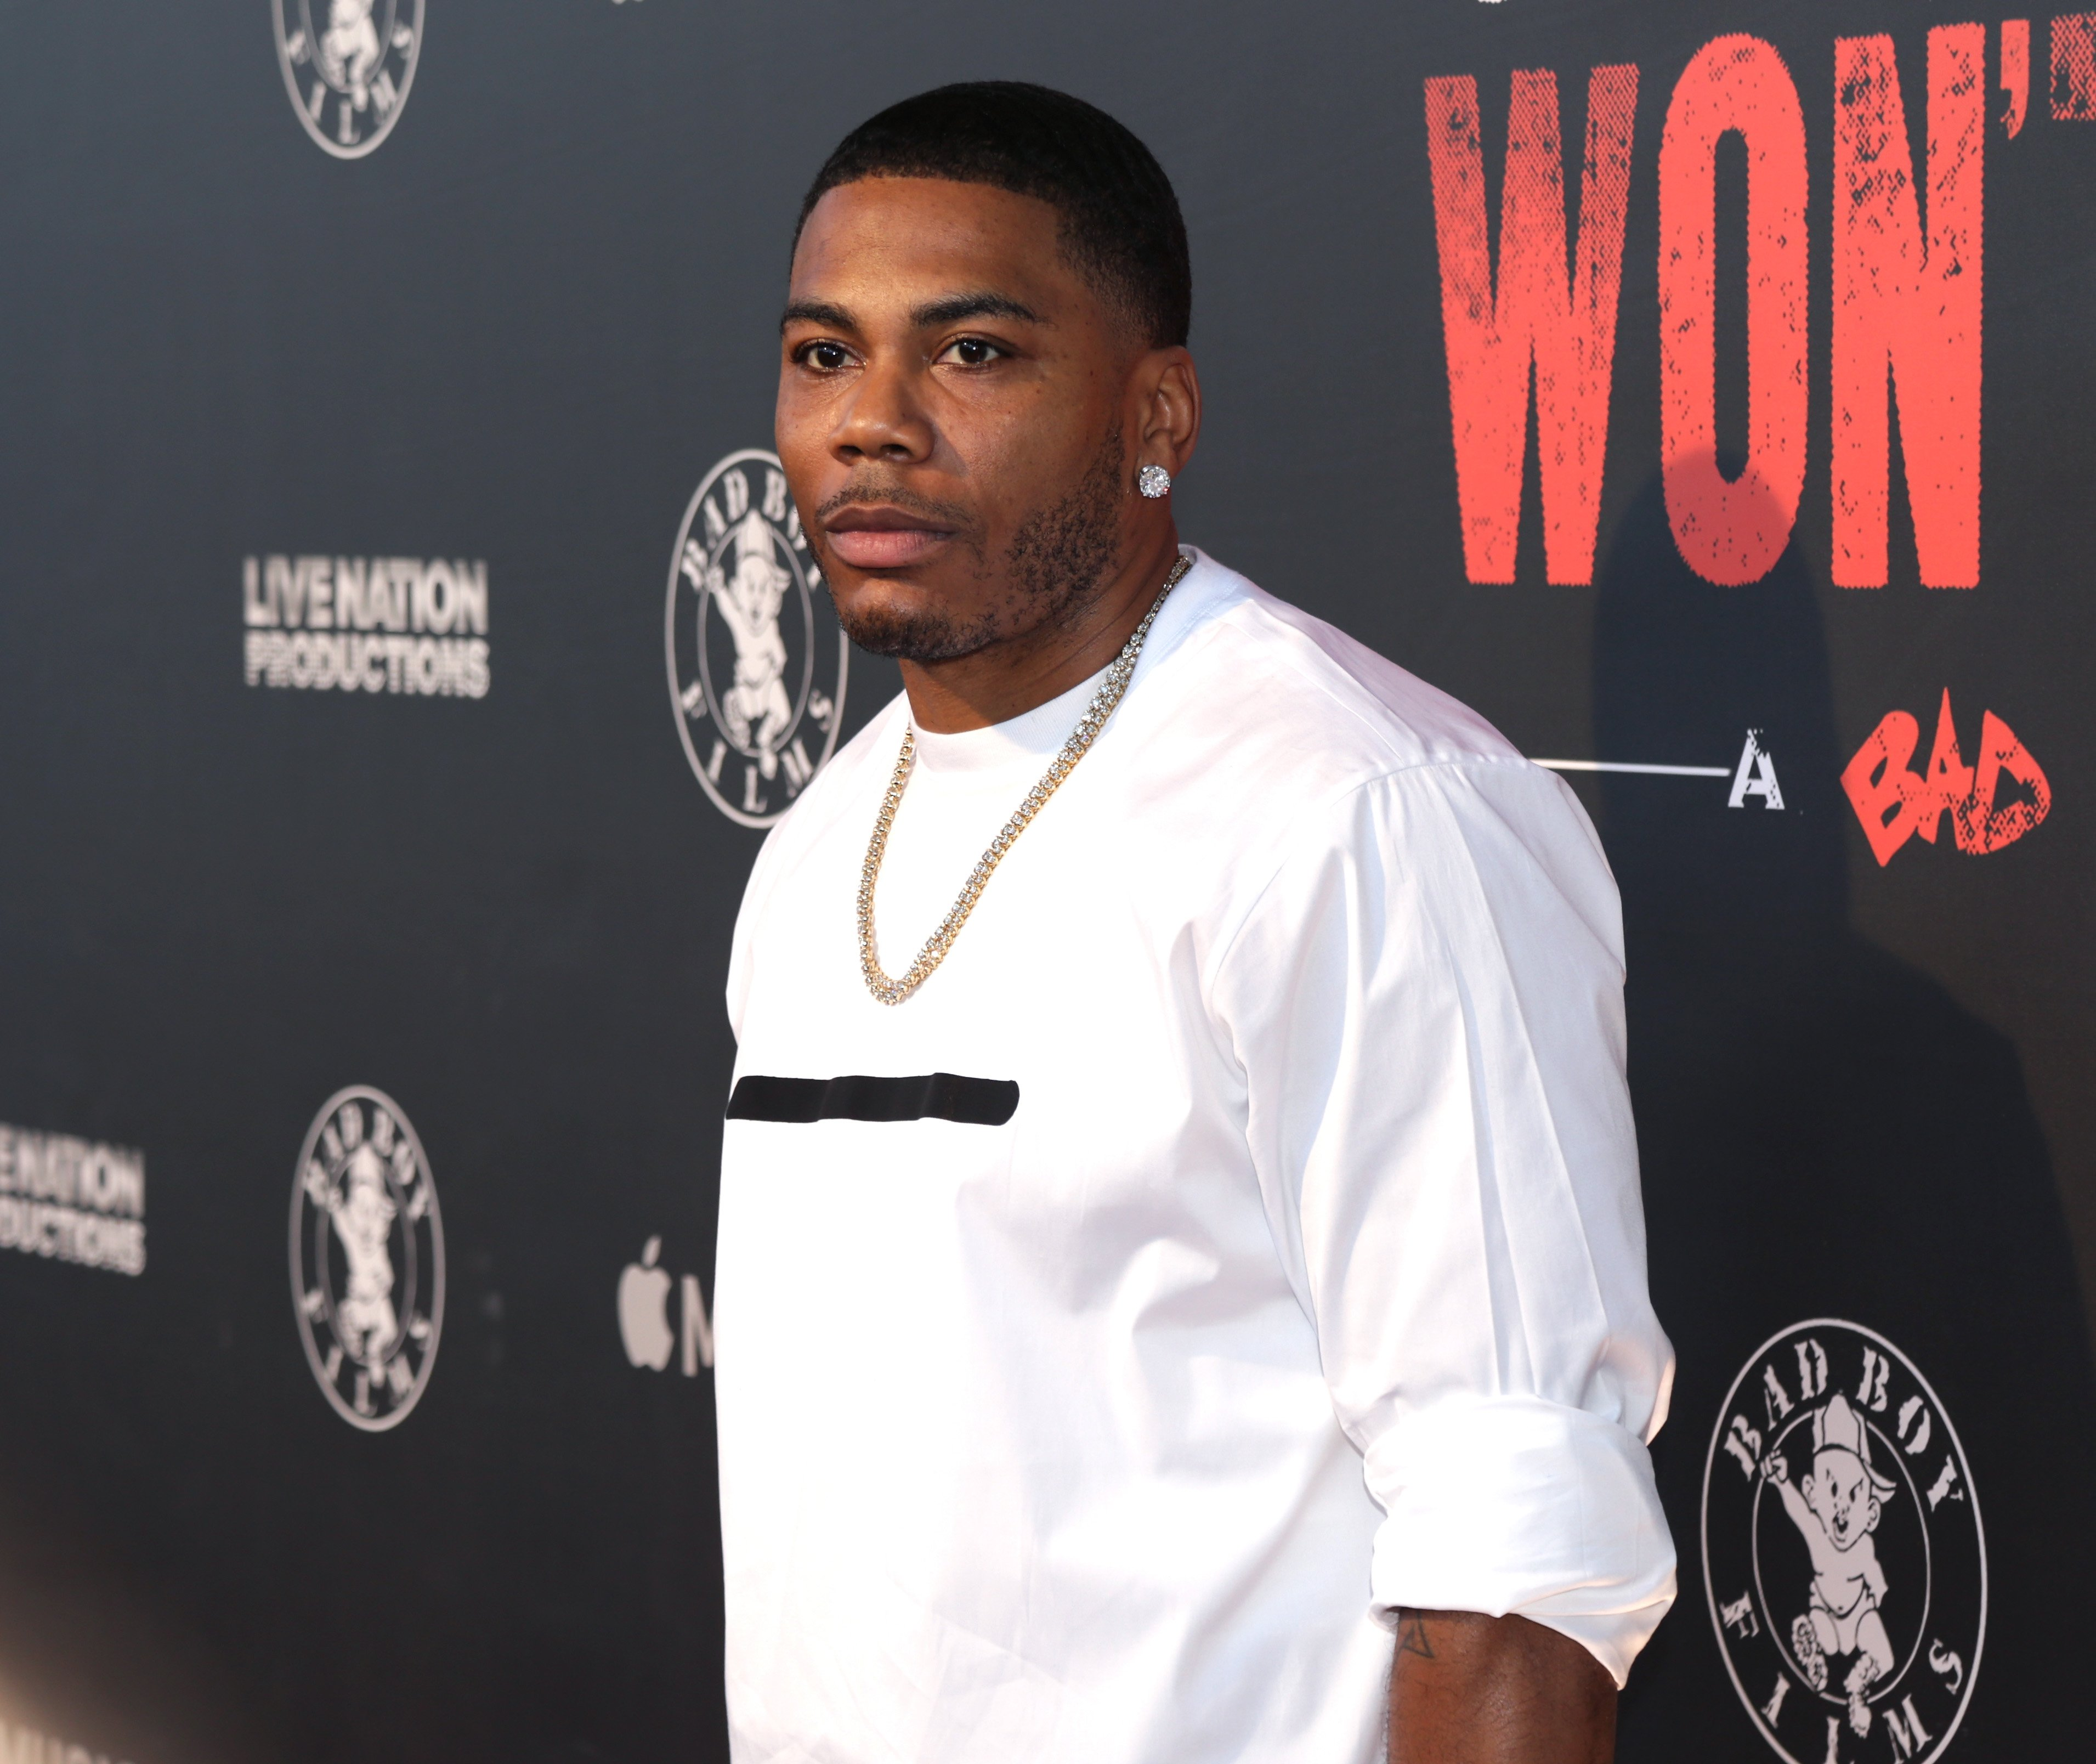 """Nelly attends the Los Angeles Premiere Of """"Can't Stop Won't Stop"""" at Writers Guild of America, West on June 21, 2017 in Los Angeles, California.  